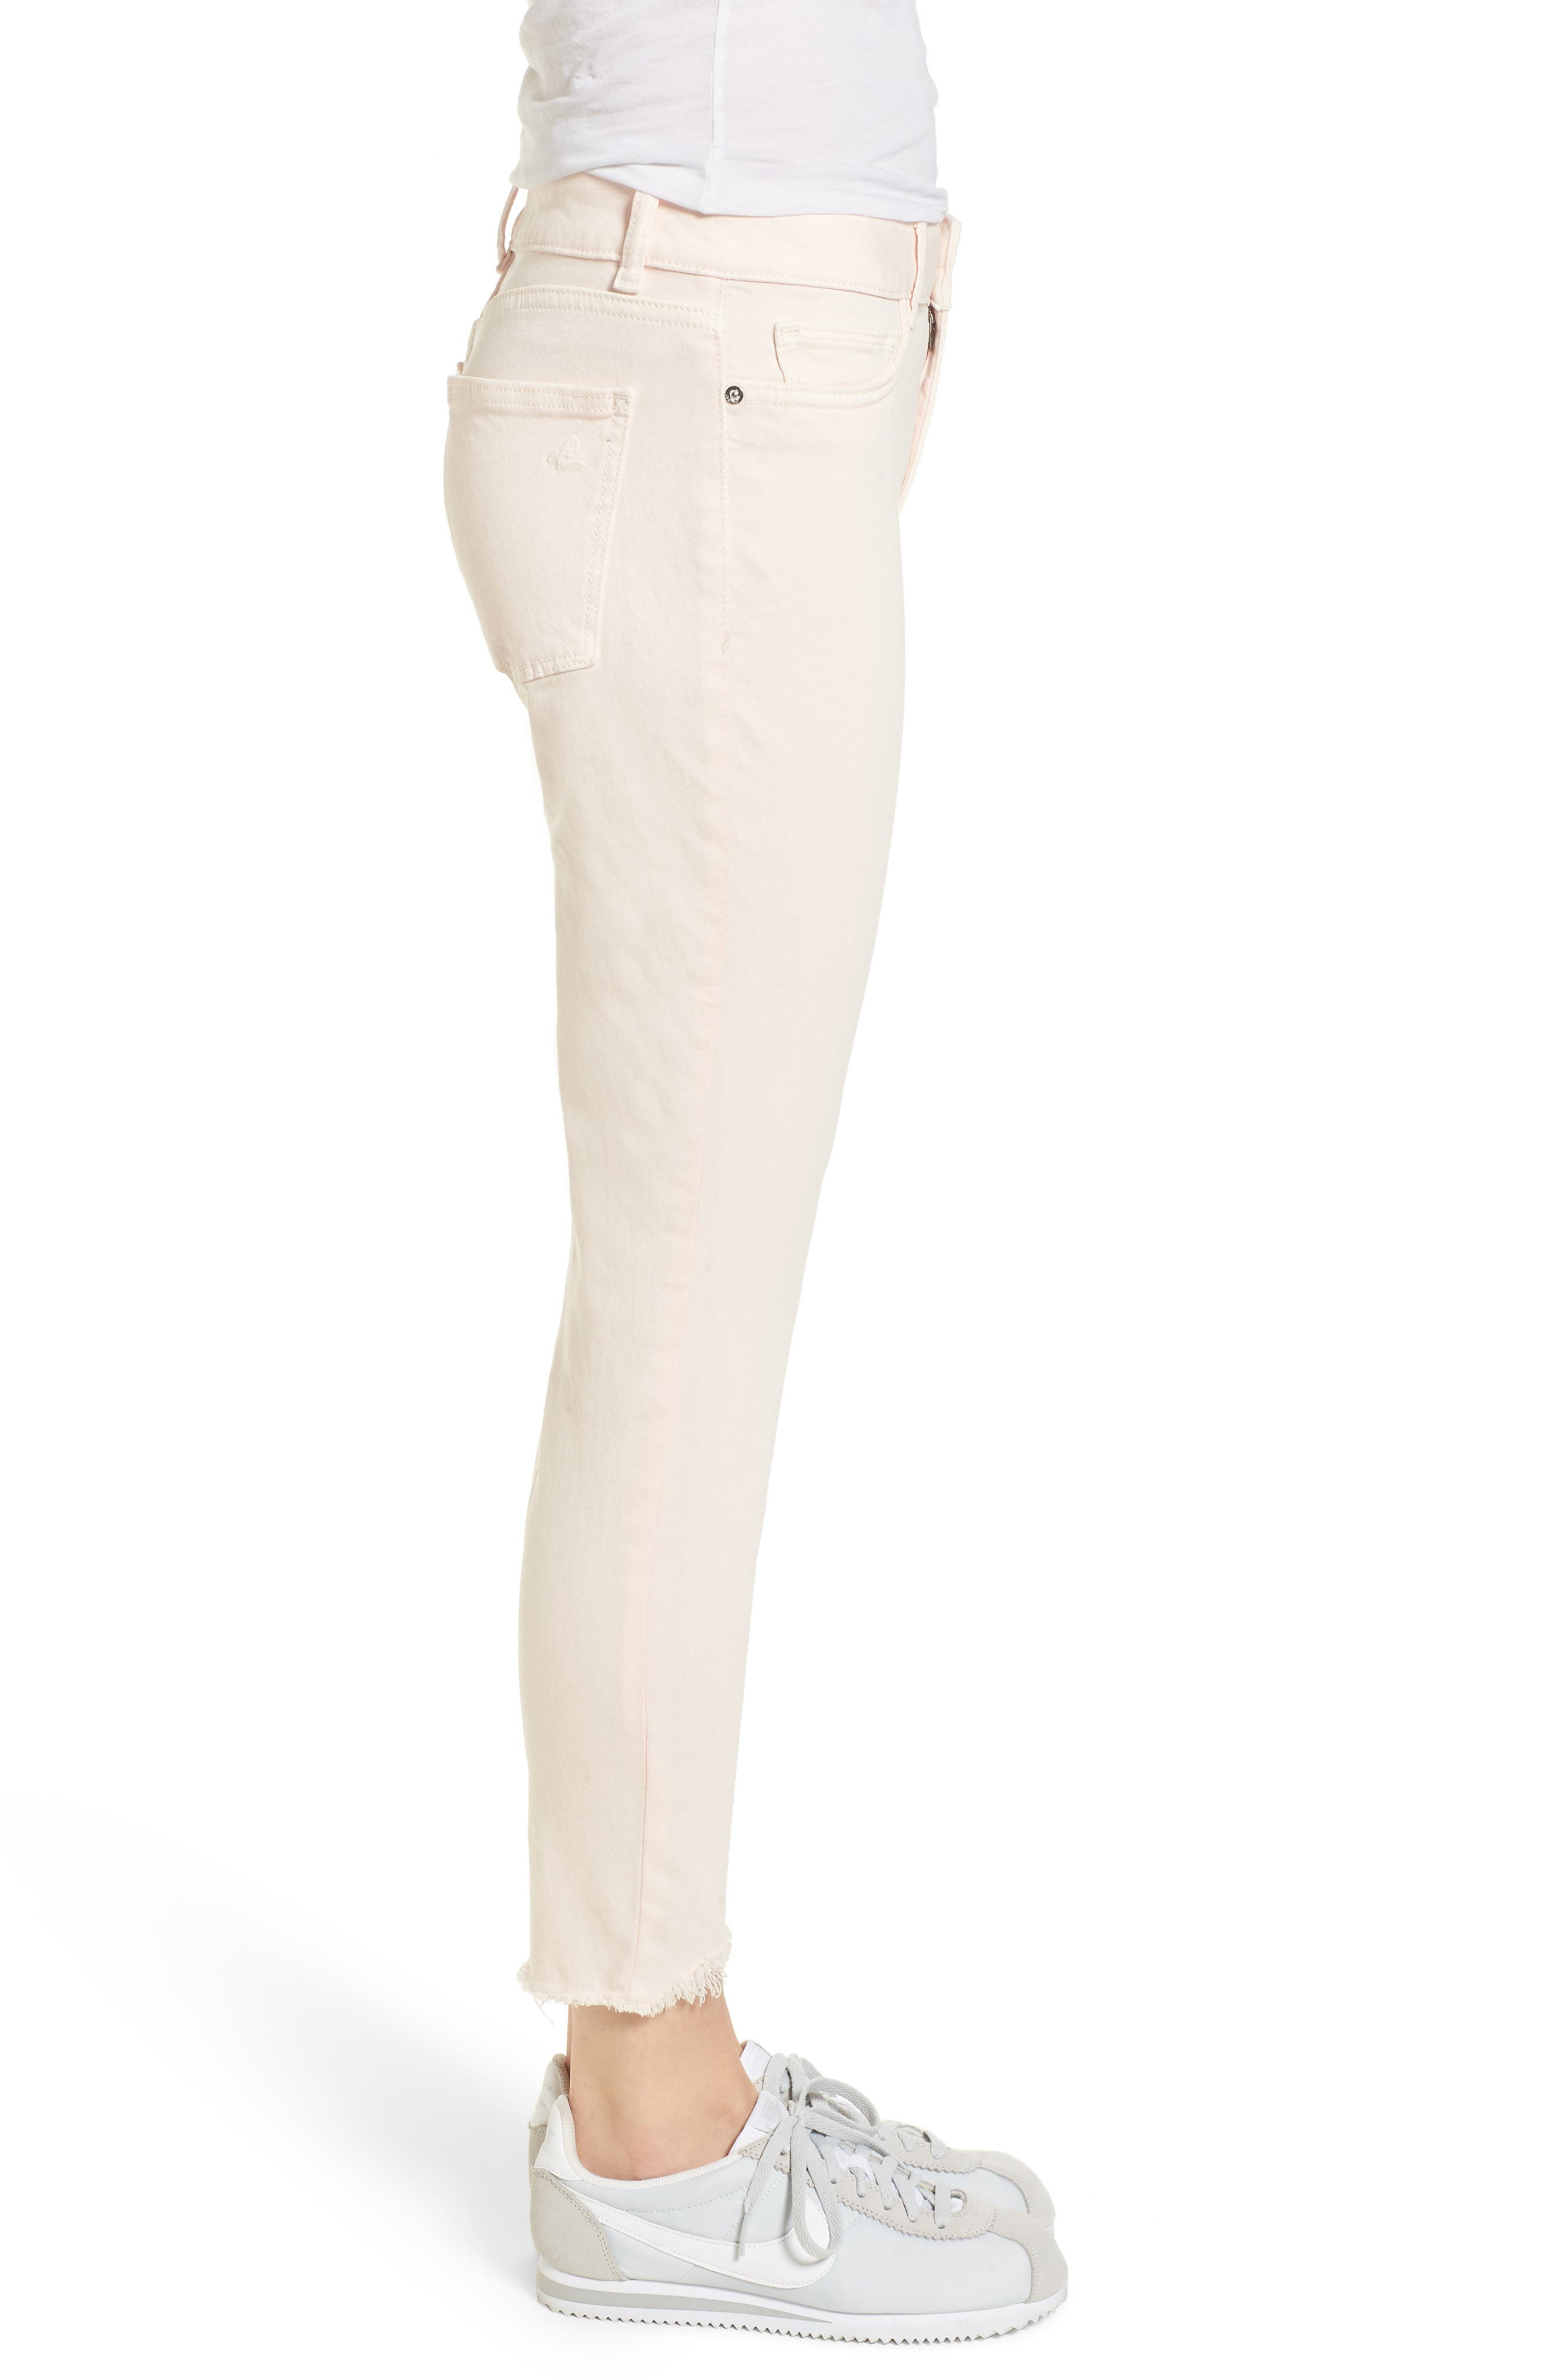 Florence Instasculpt Crop Skinny Jeans,                             Alternate thumbnail 3, color,                             Blush Pink